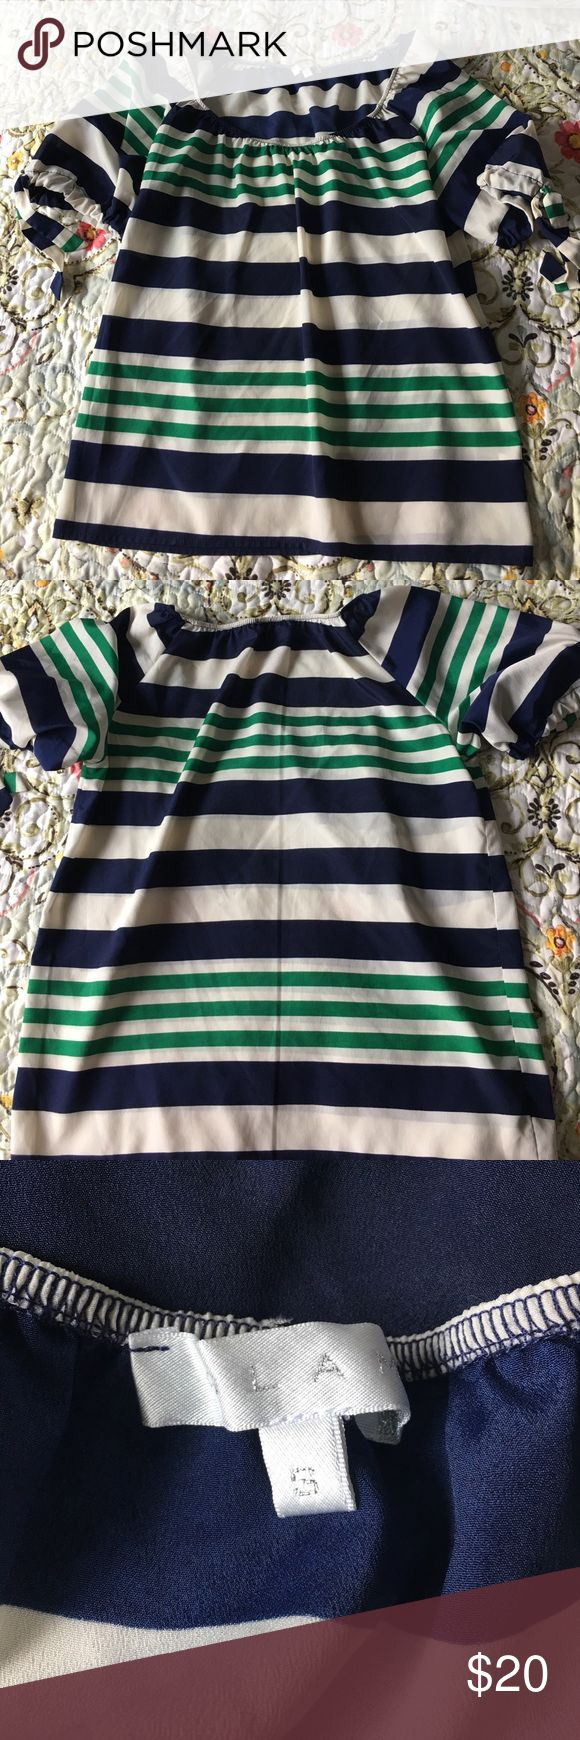 Nautical Blouse Blue and Green striped Blouse with ties on sleeves. Elastic neck to wear either as scoop-neck or off the shoulder. Open to offers! GLAM Tops Blouses